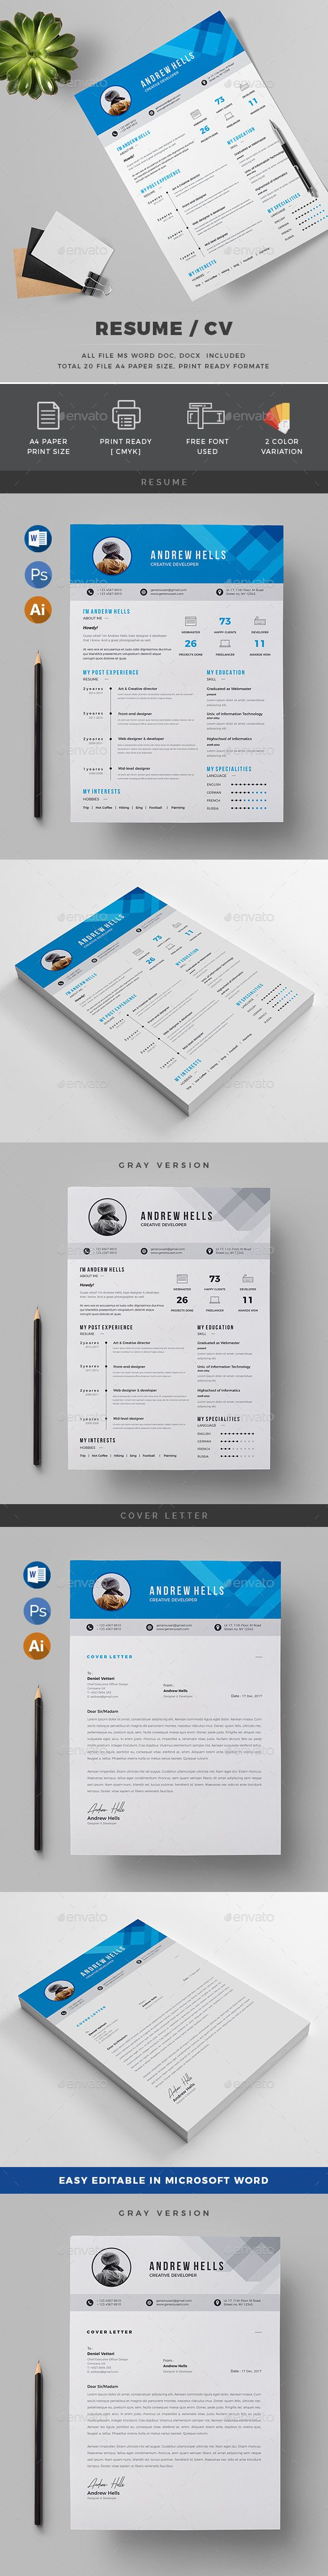 Resume | Template, Cv ideas and Simple resume template